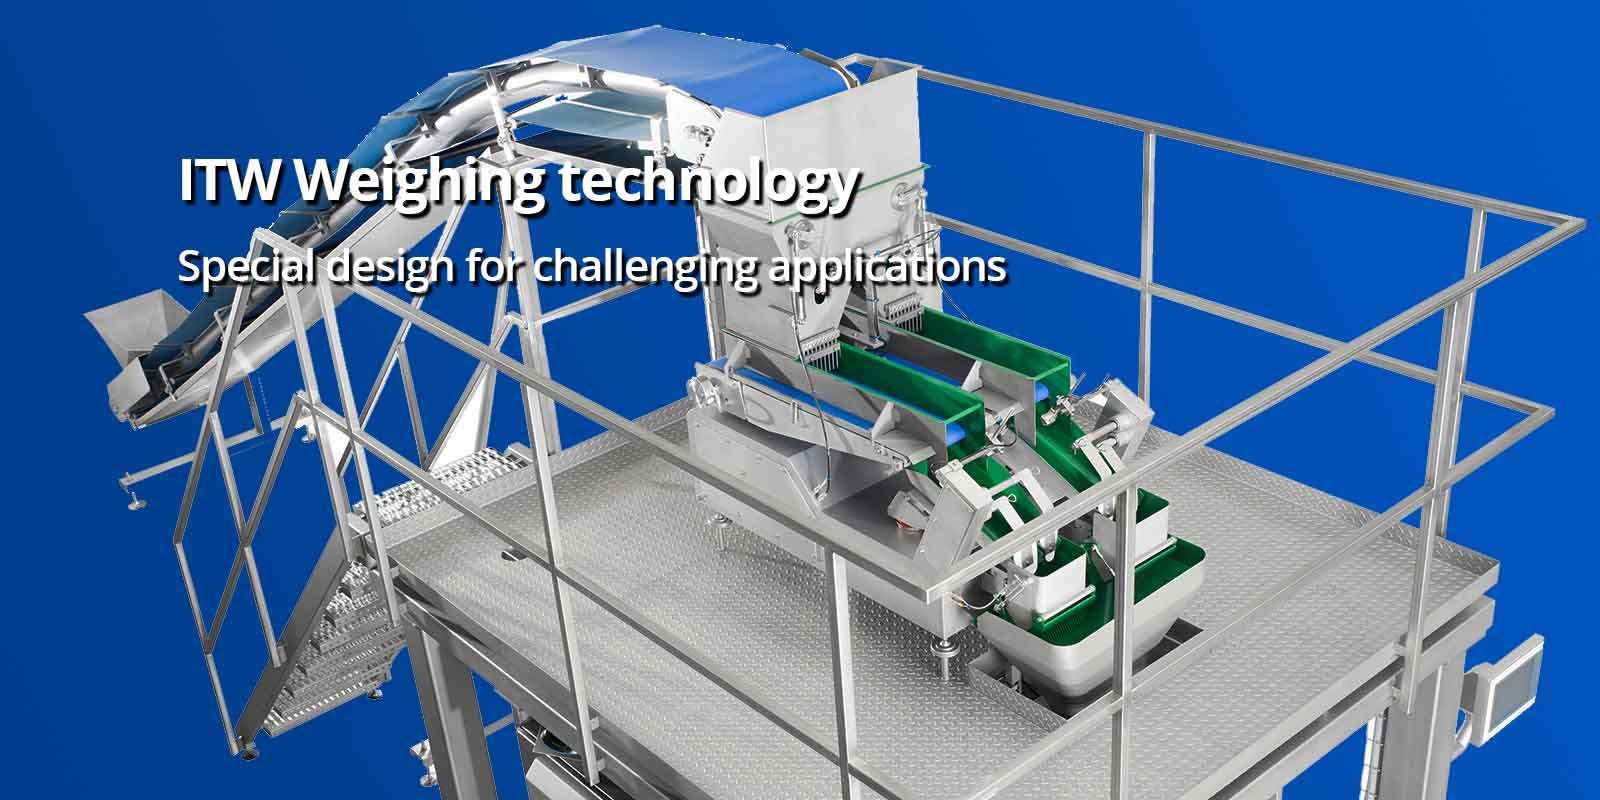 ITW Weighing technology Special design for challenging applications